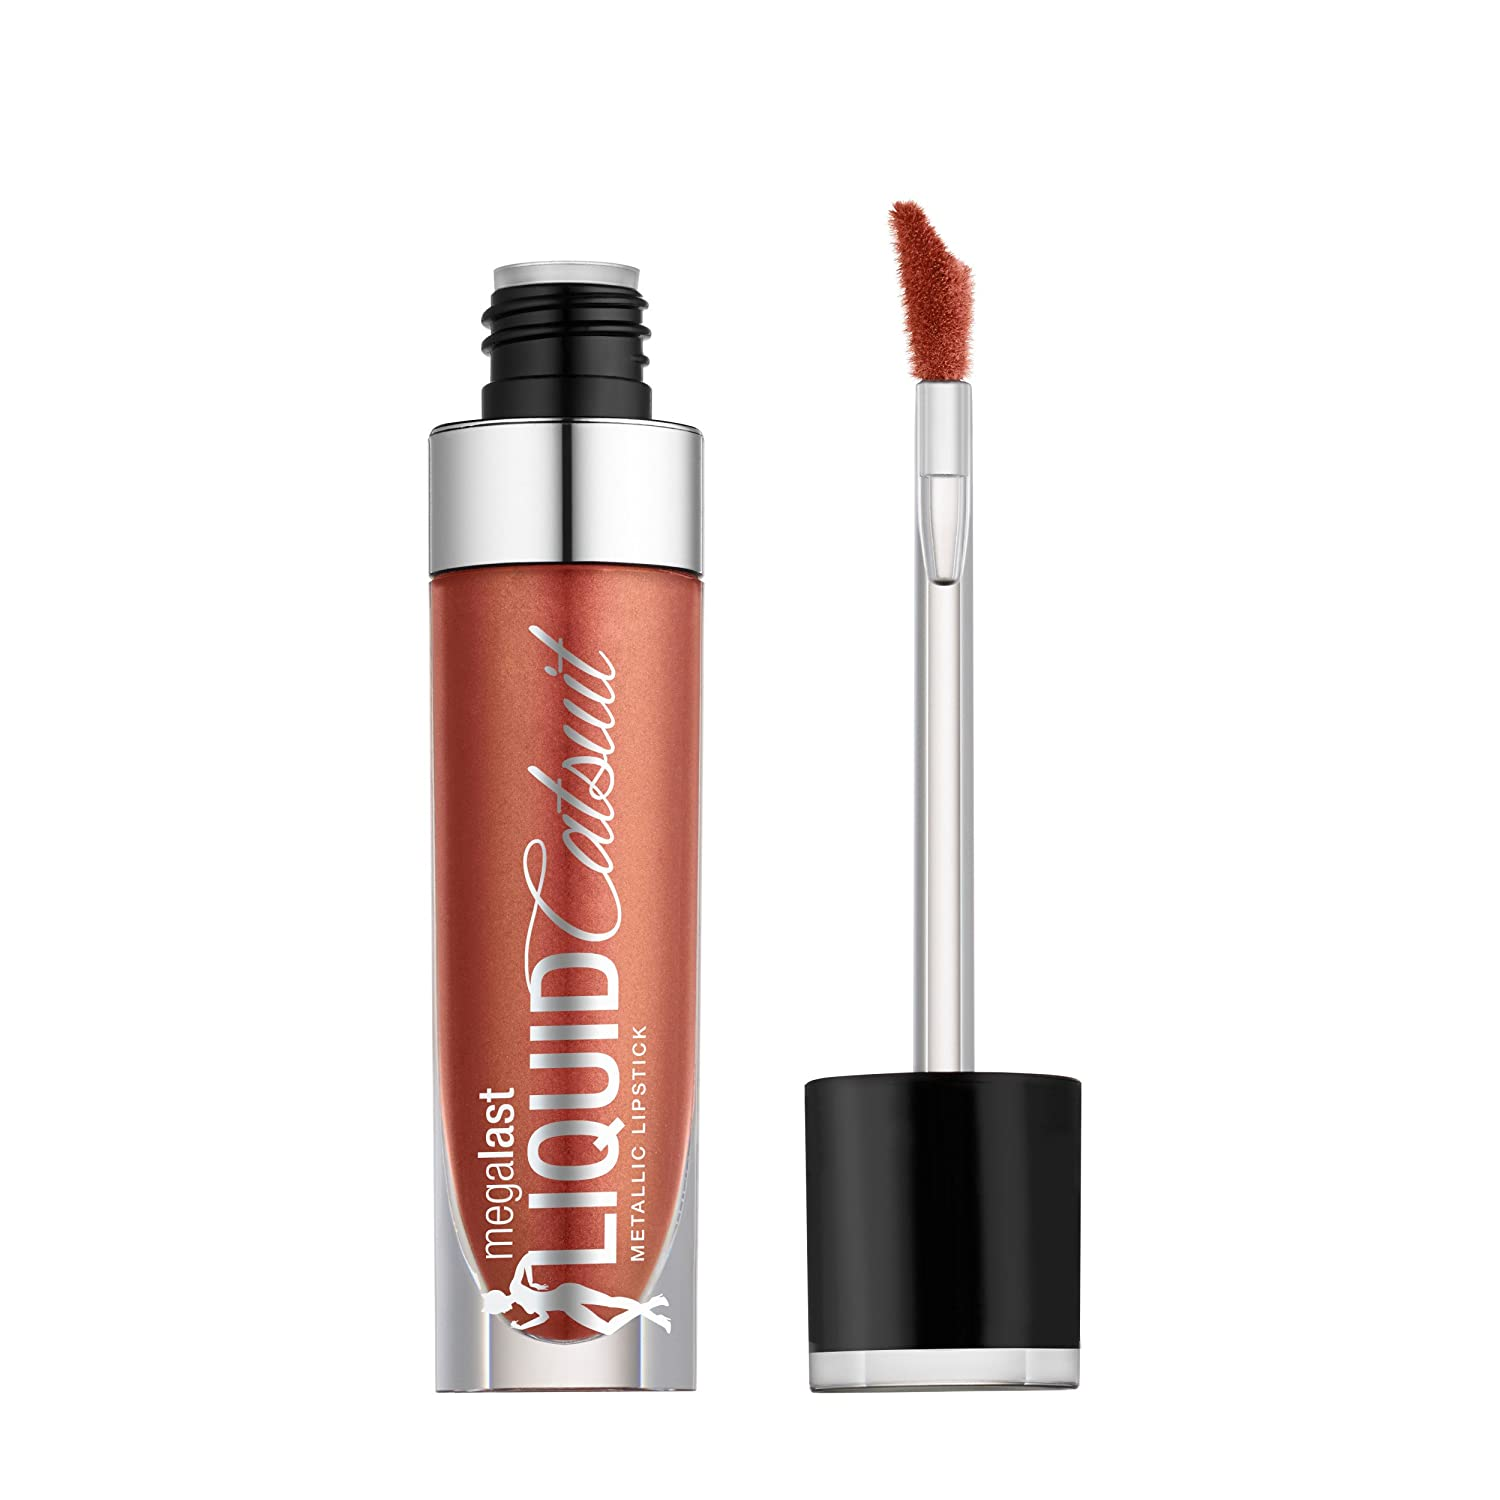 wet n wild Megalast Liquid Catsuit Metallic Lipstick, Bali in Love, 0.21 Ounce